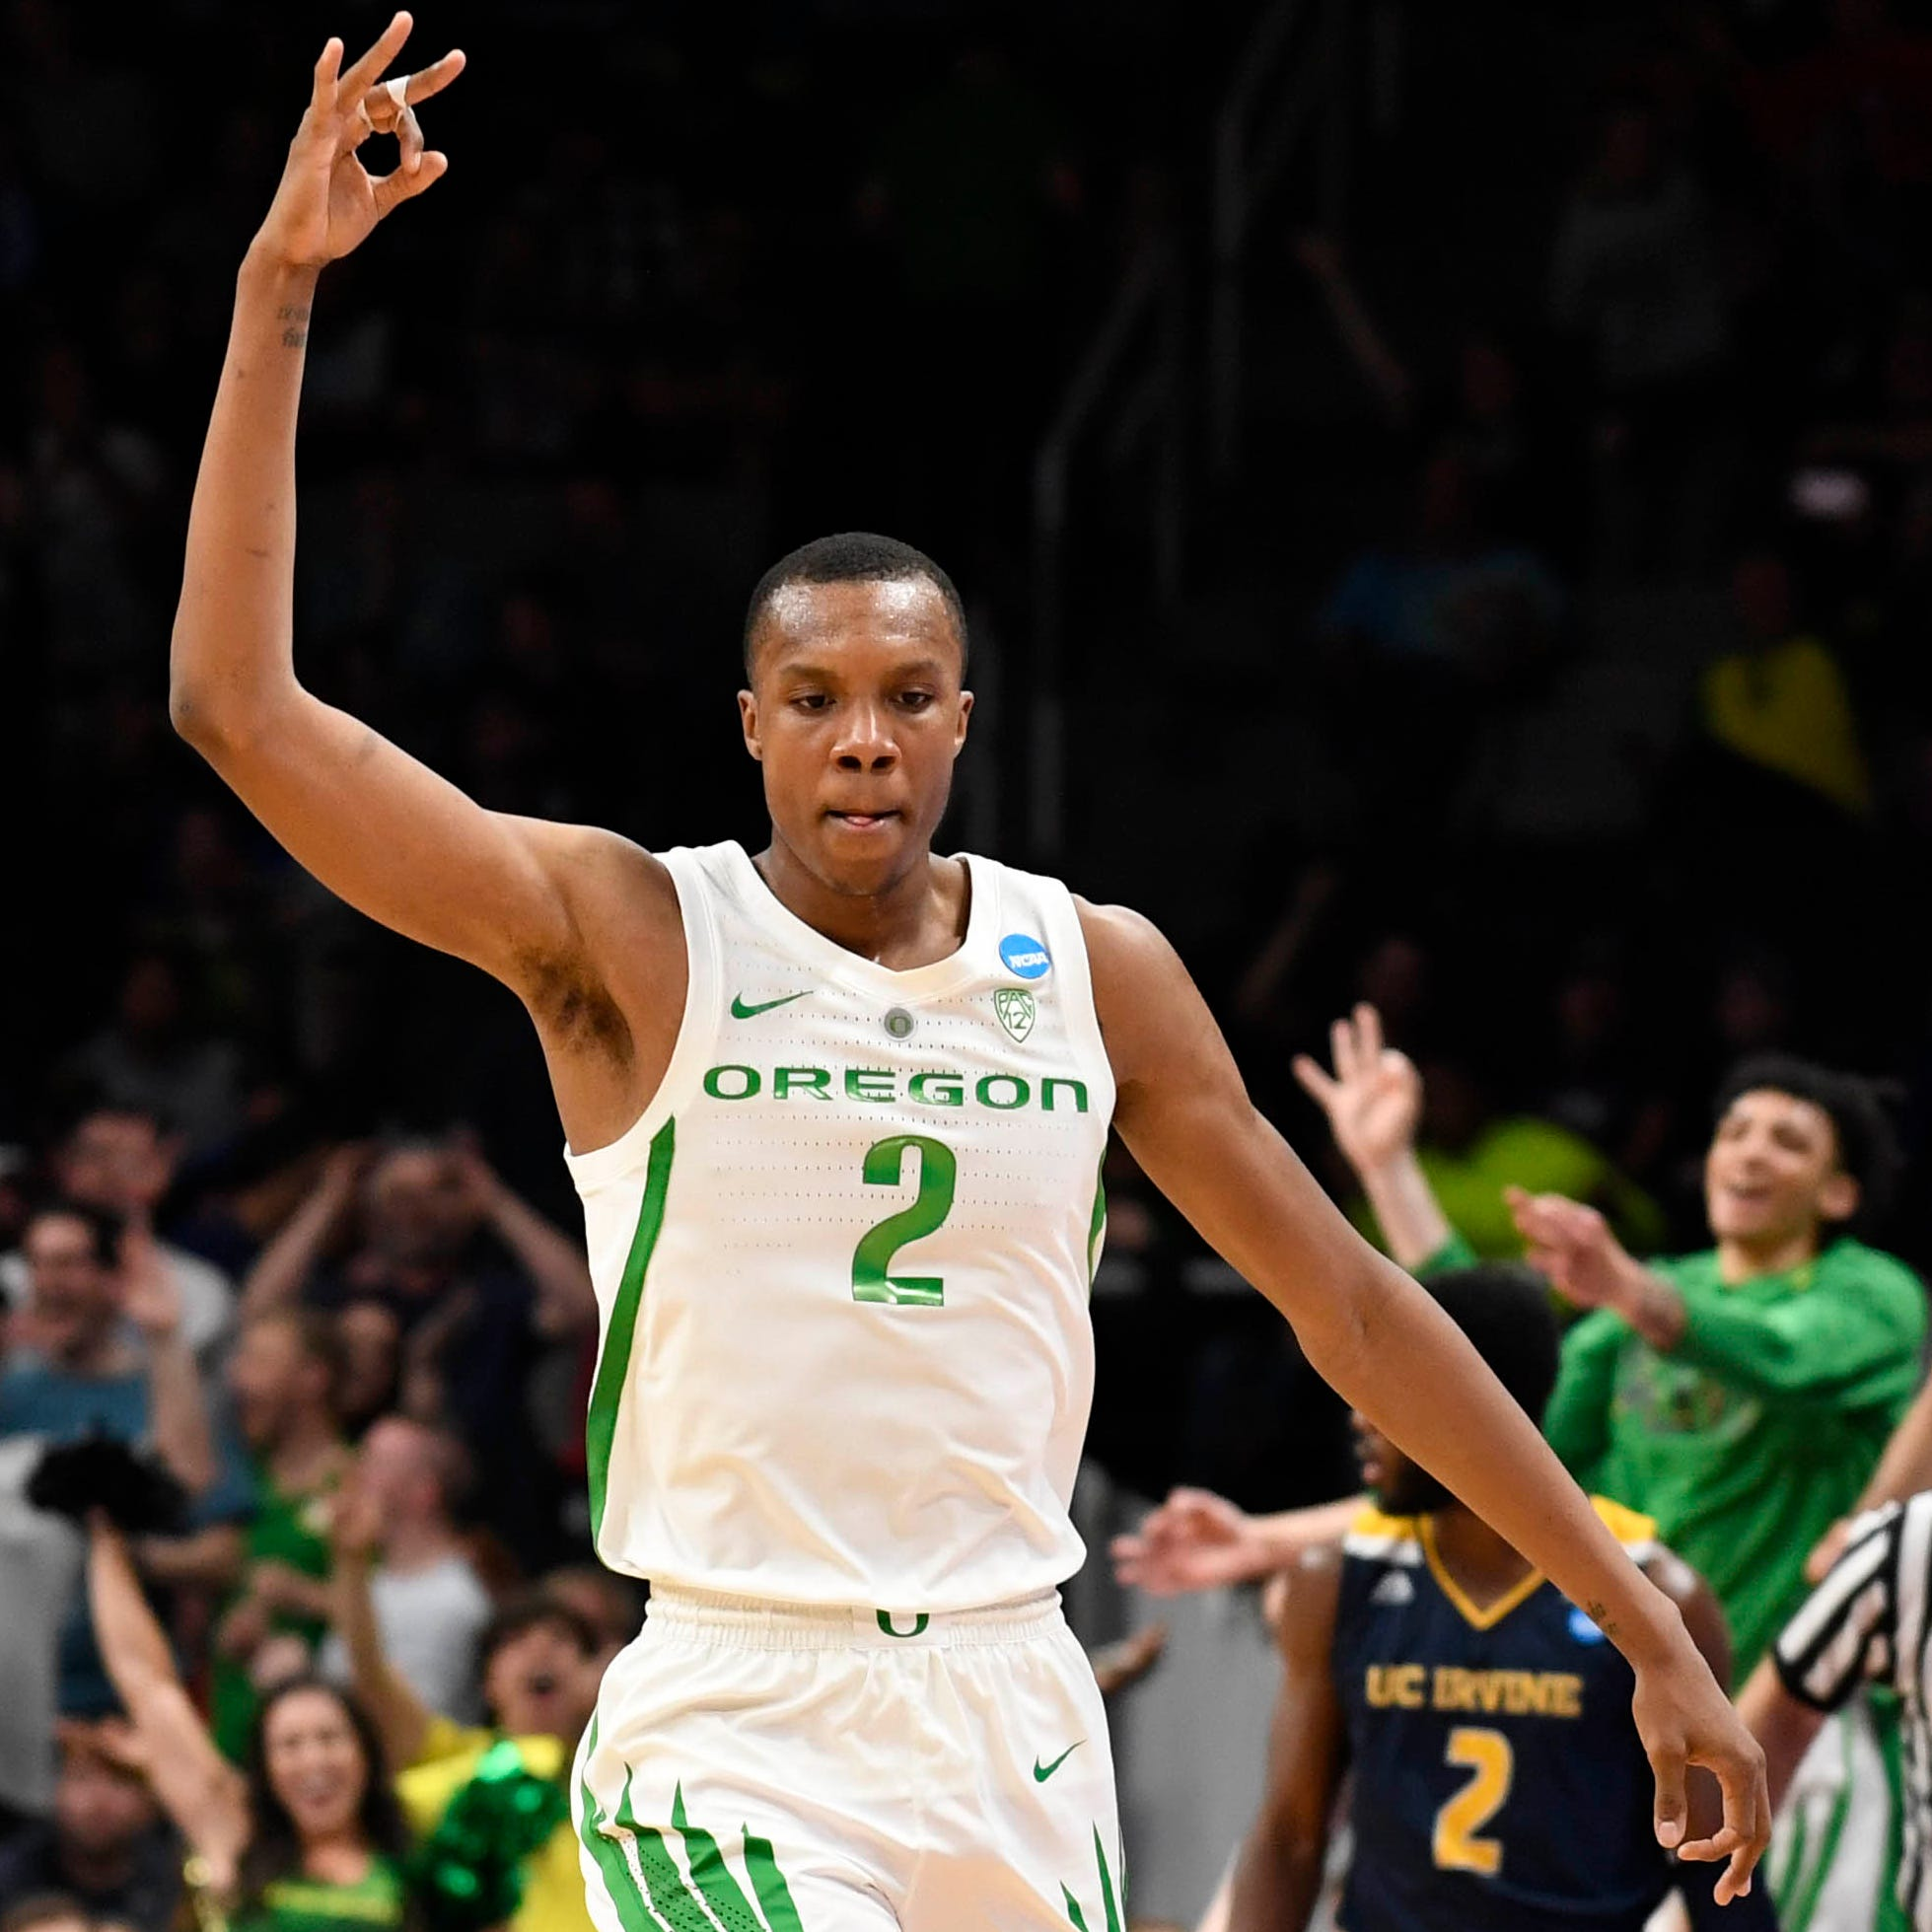 UC Irvine baited Oregon's Louis King by calling him 'Queen' during NCAA tournament game